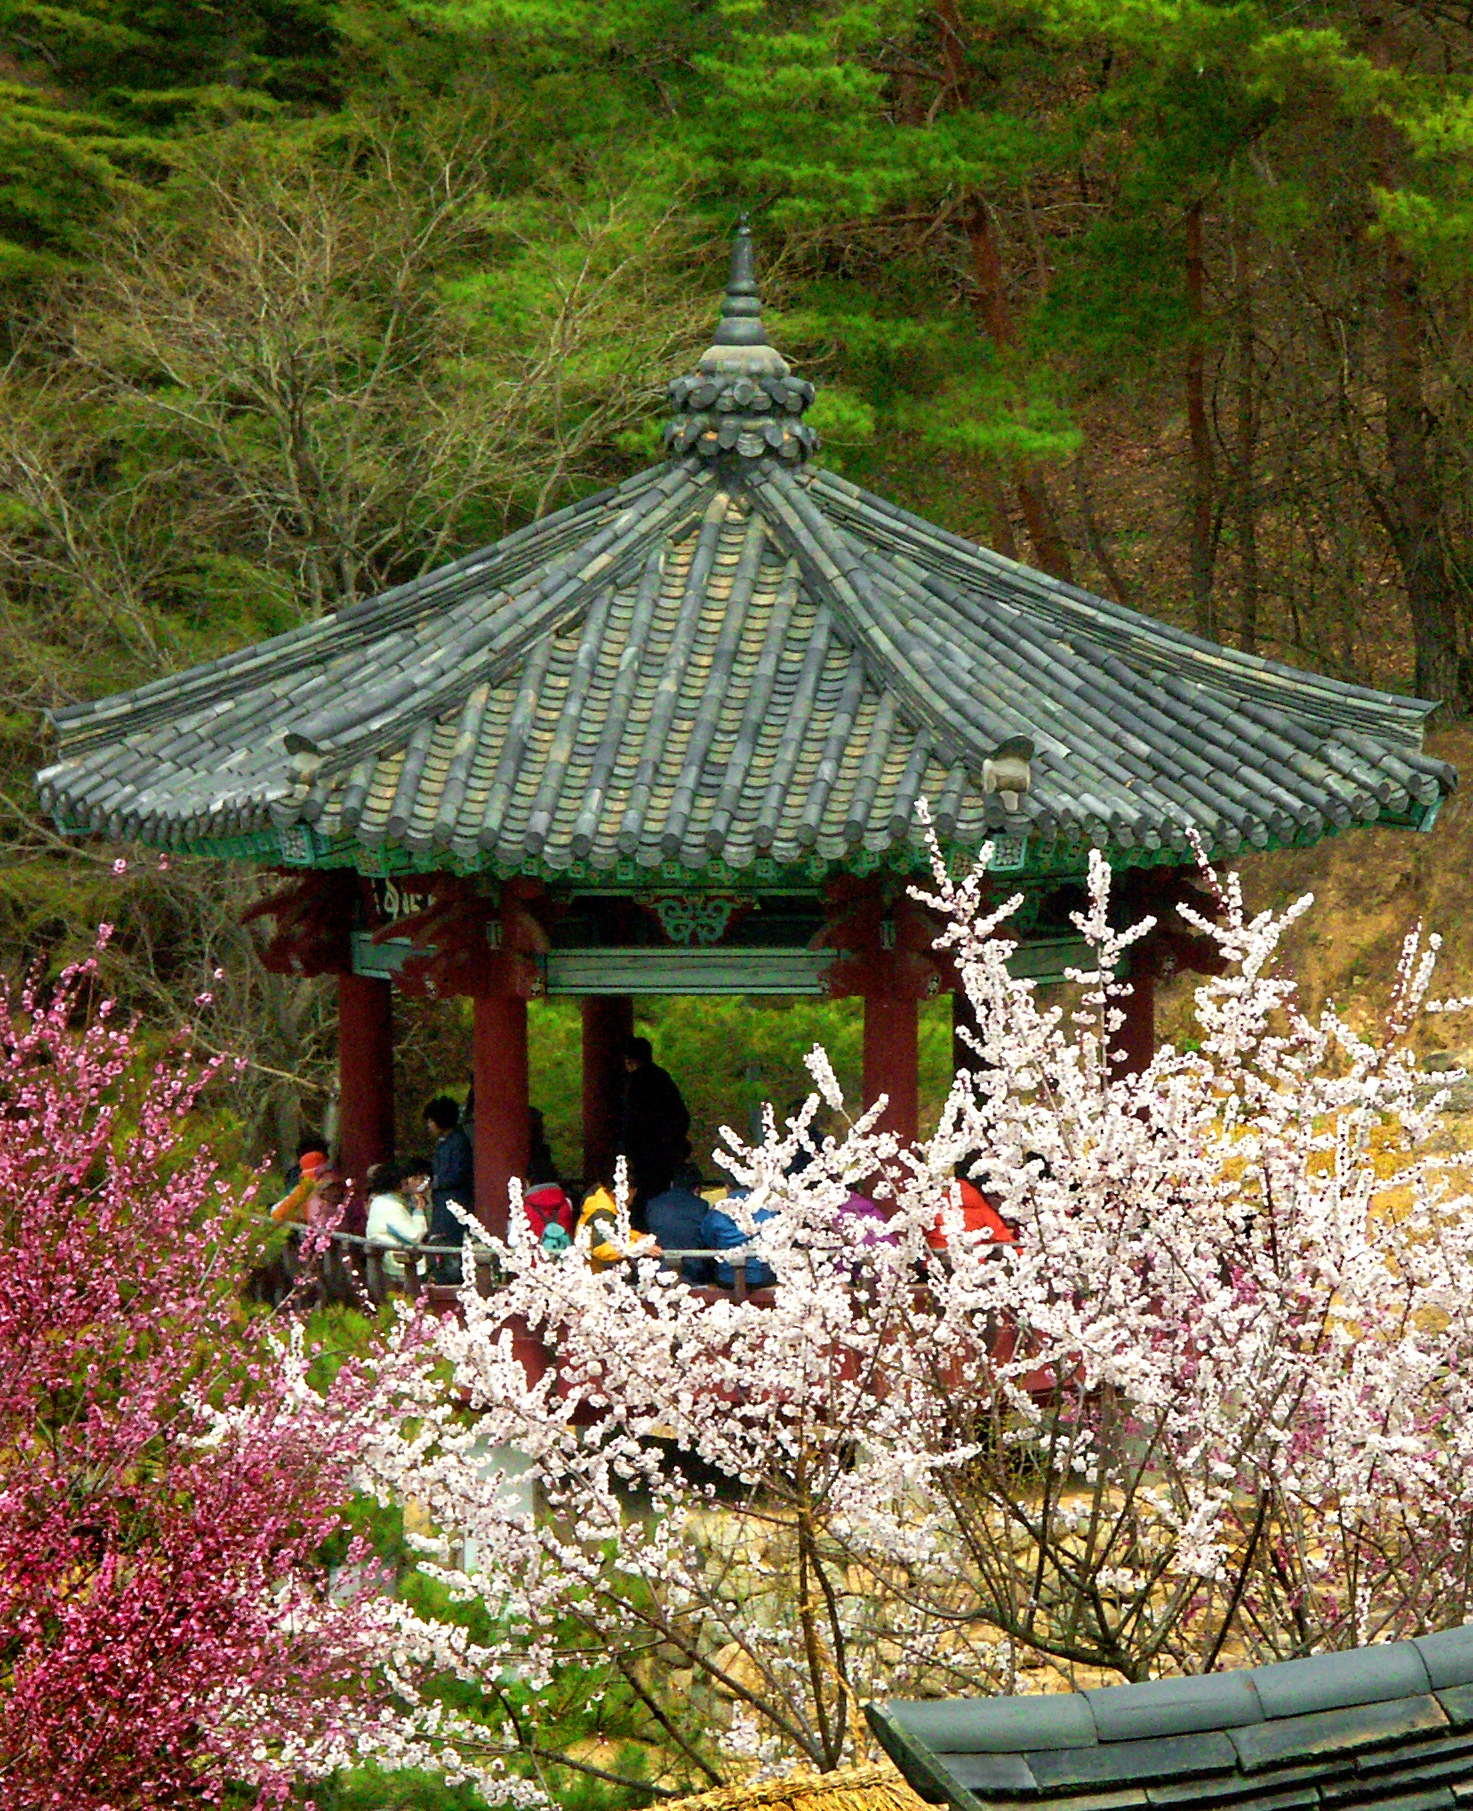 A Pavilion in the Spring by Steve Garrigues